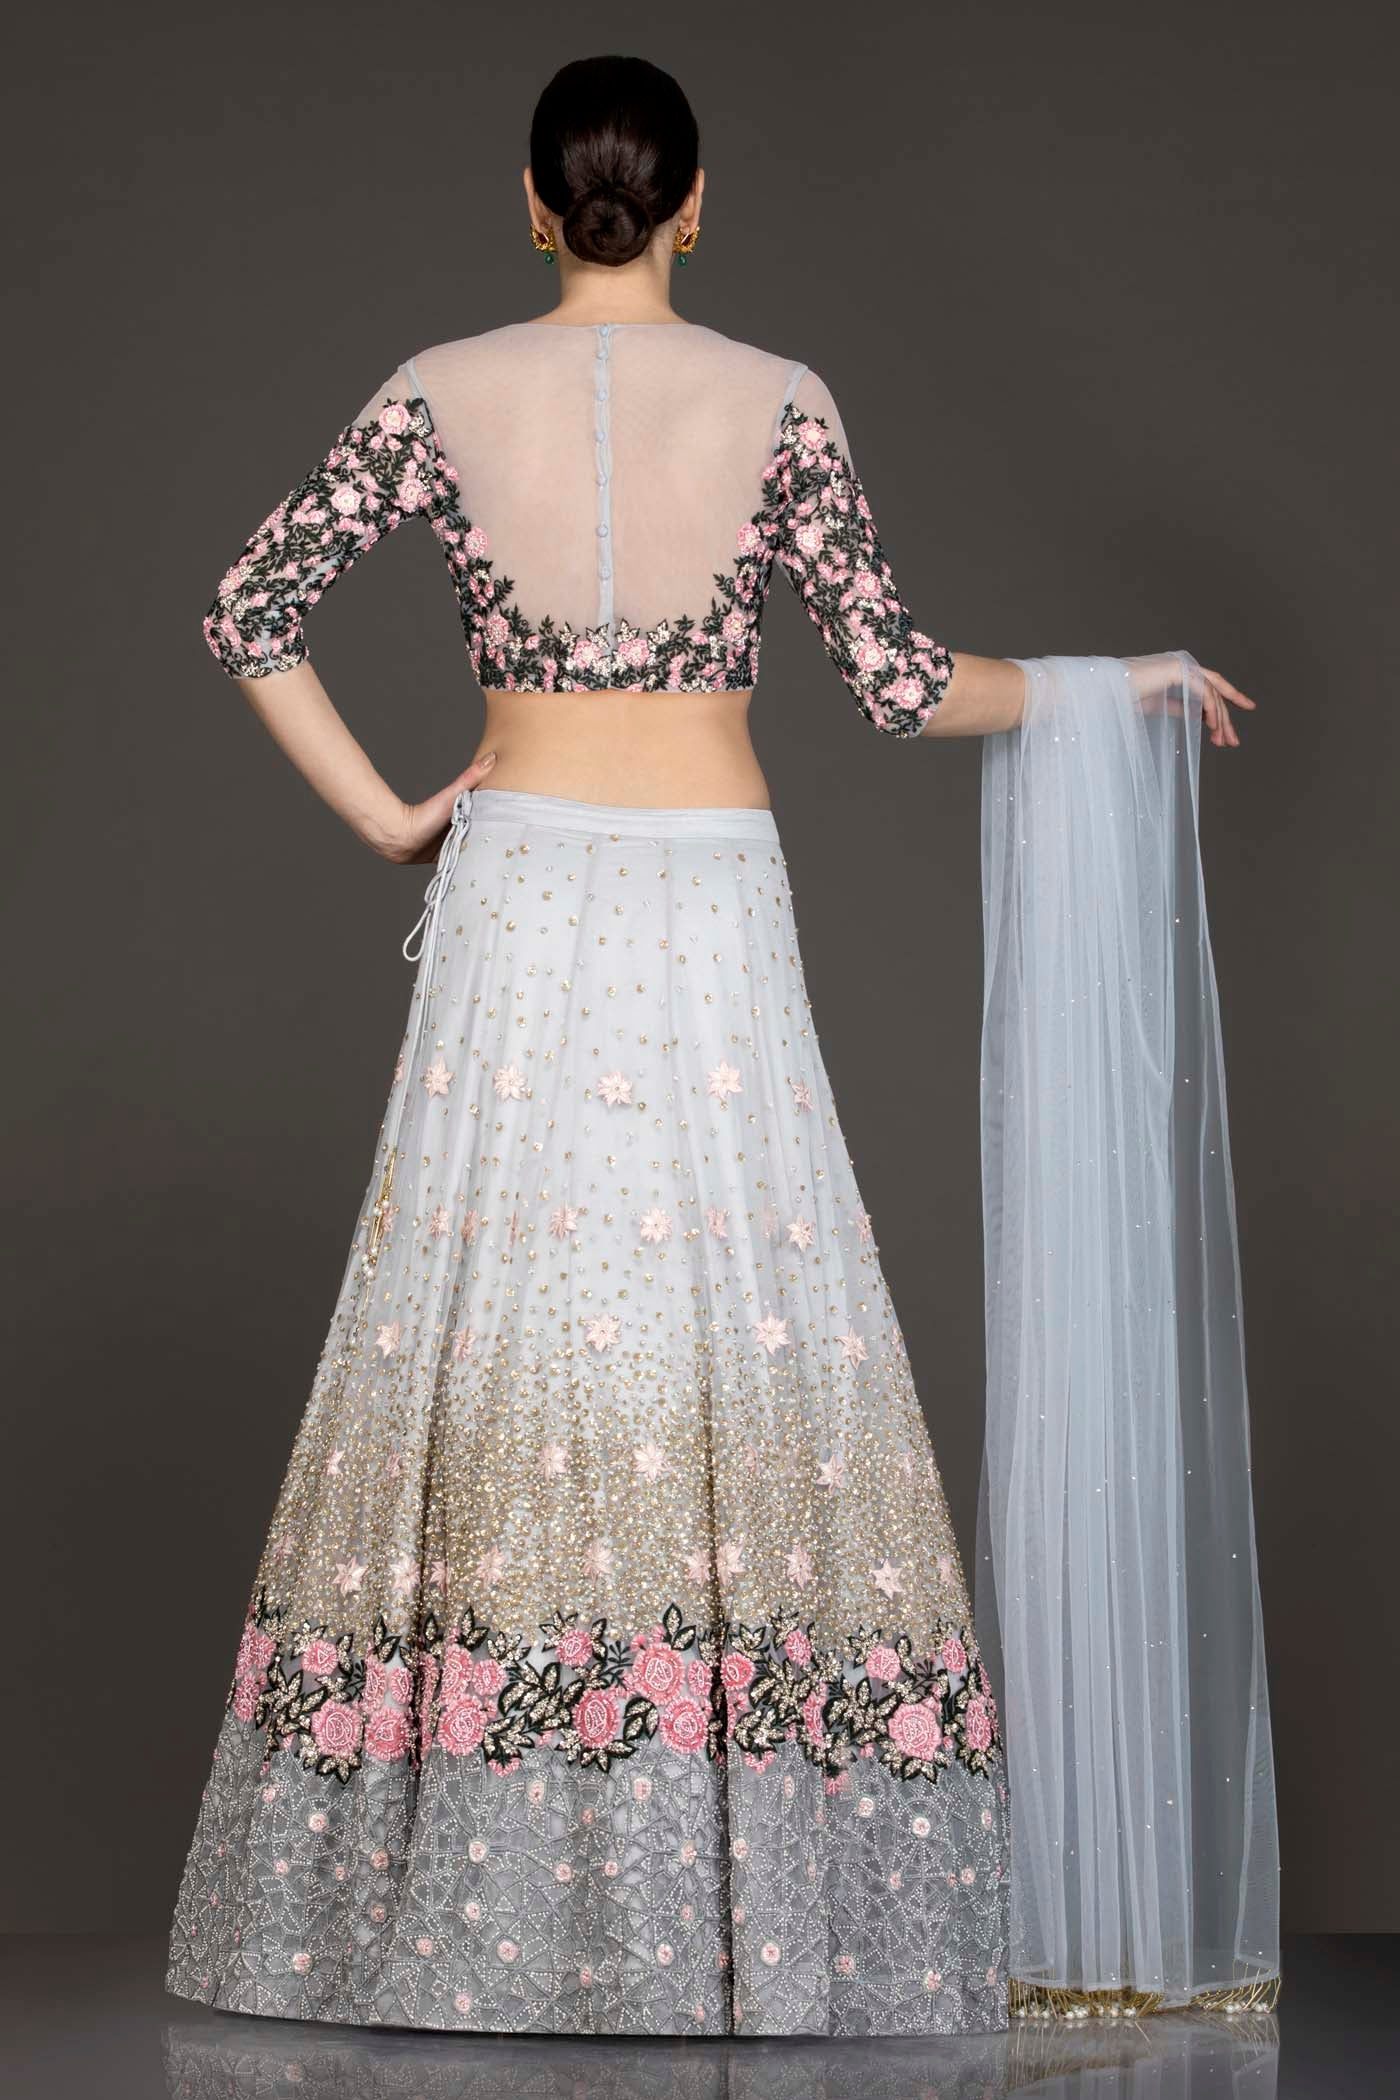 Light Grey Colour Net Lehenga Top Dupatta With Black And Pink Thread Work And Sequence Highlighting